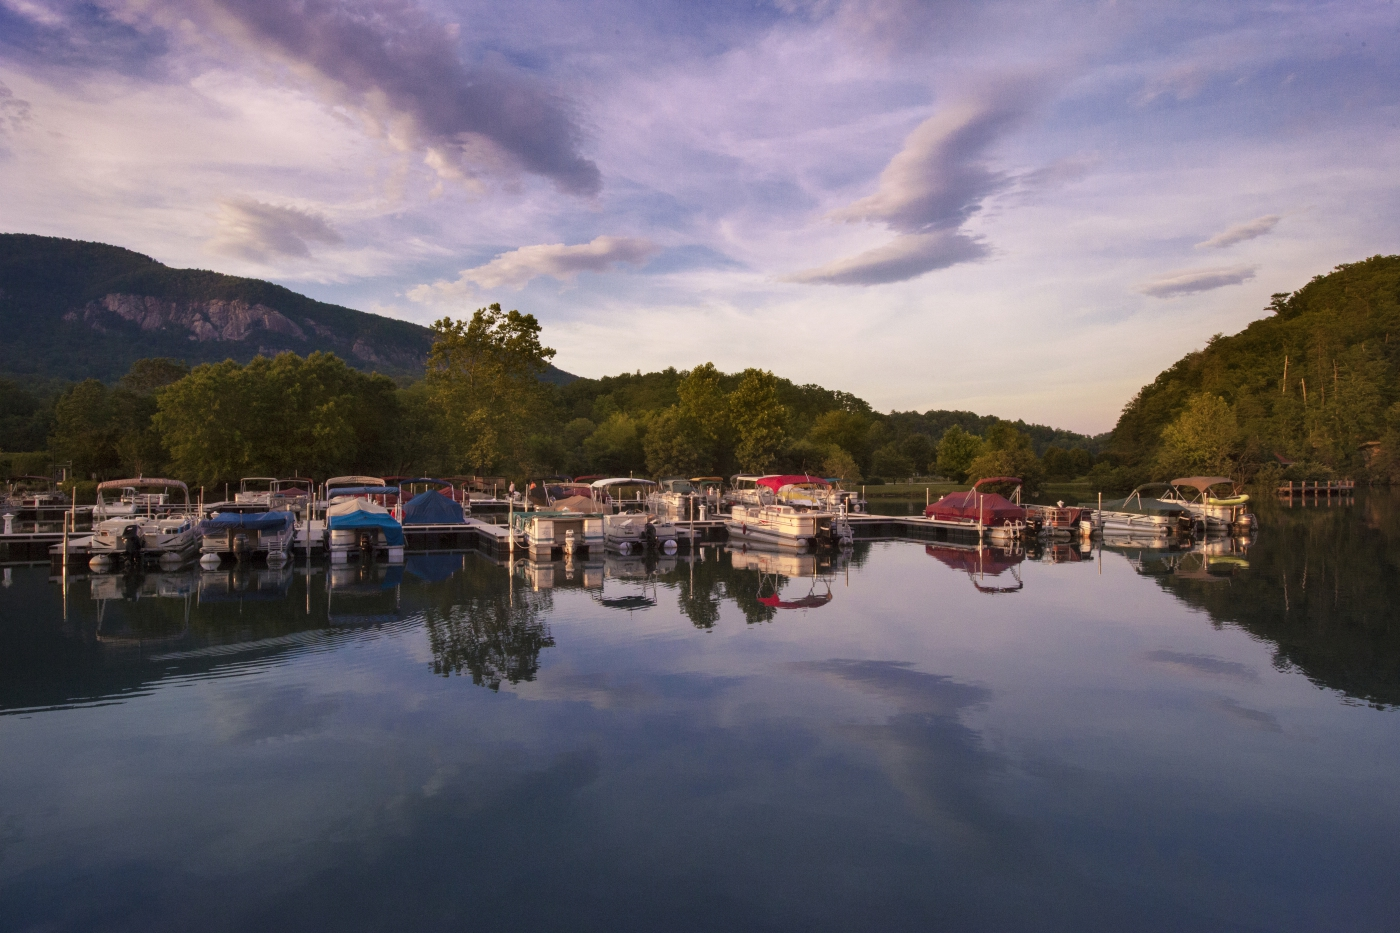 Lake Lure offers a scenic mountain retreat with 20 miles of shoreline. Visitors can boat, hike, bike, explore nearby Asheville and more.